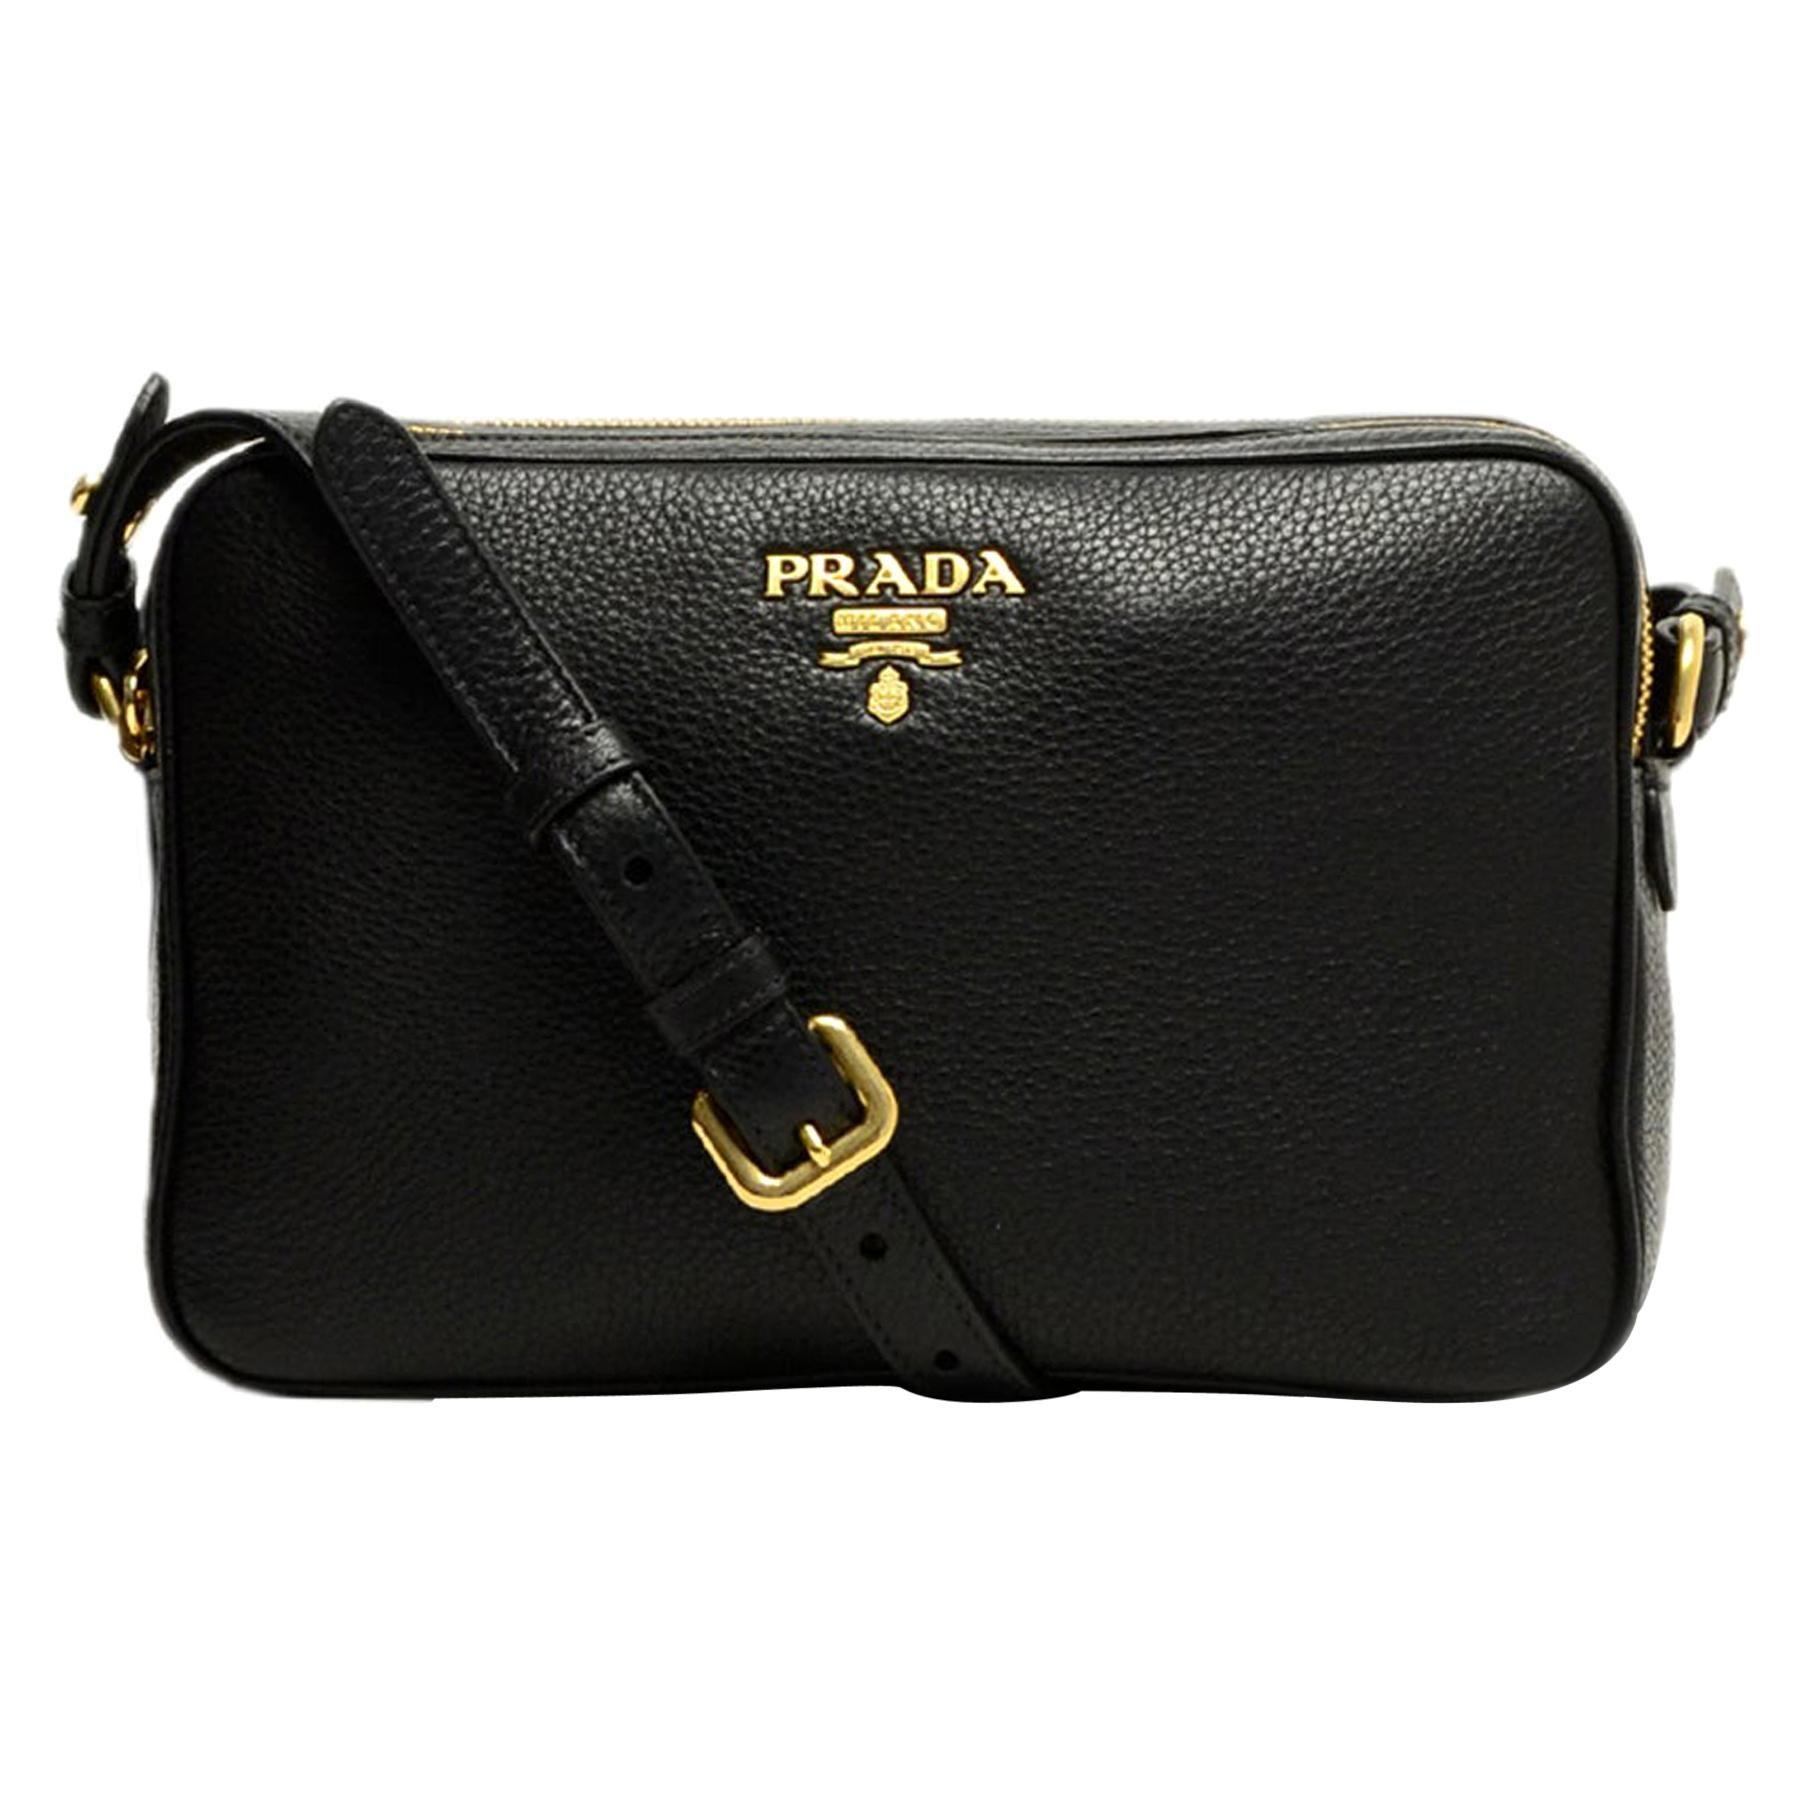 fb9c6dce905 Vintage Prada Crossbody Bags and Messenger Bags - 143 For Sale at 1stdibs